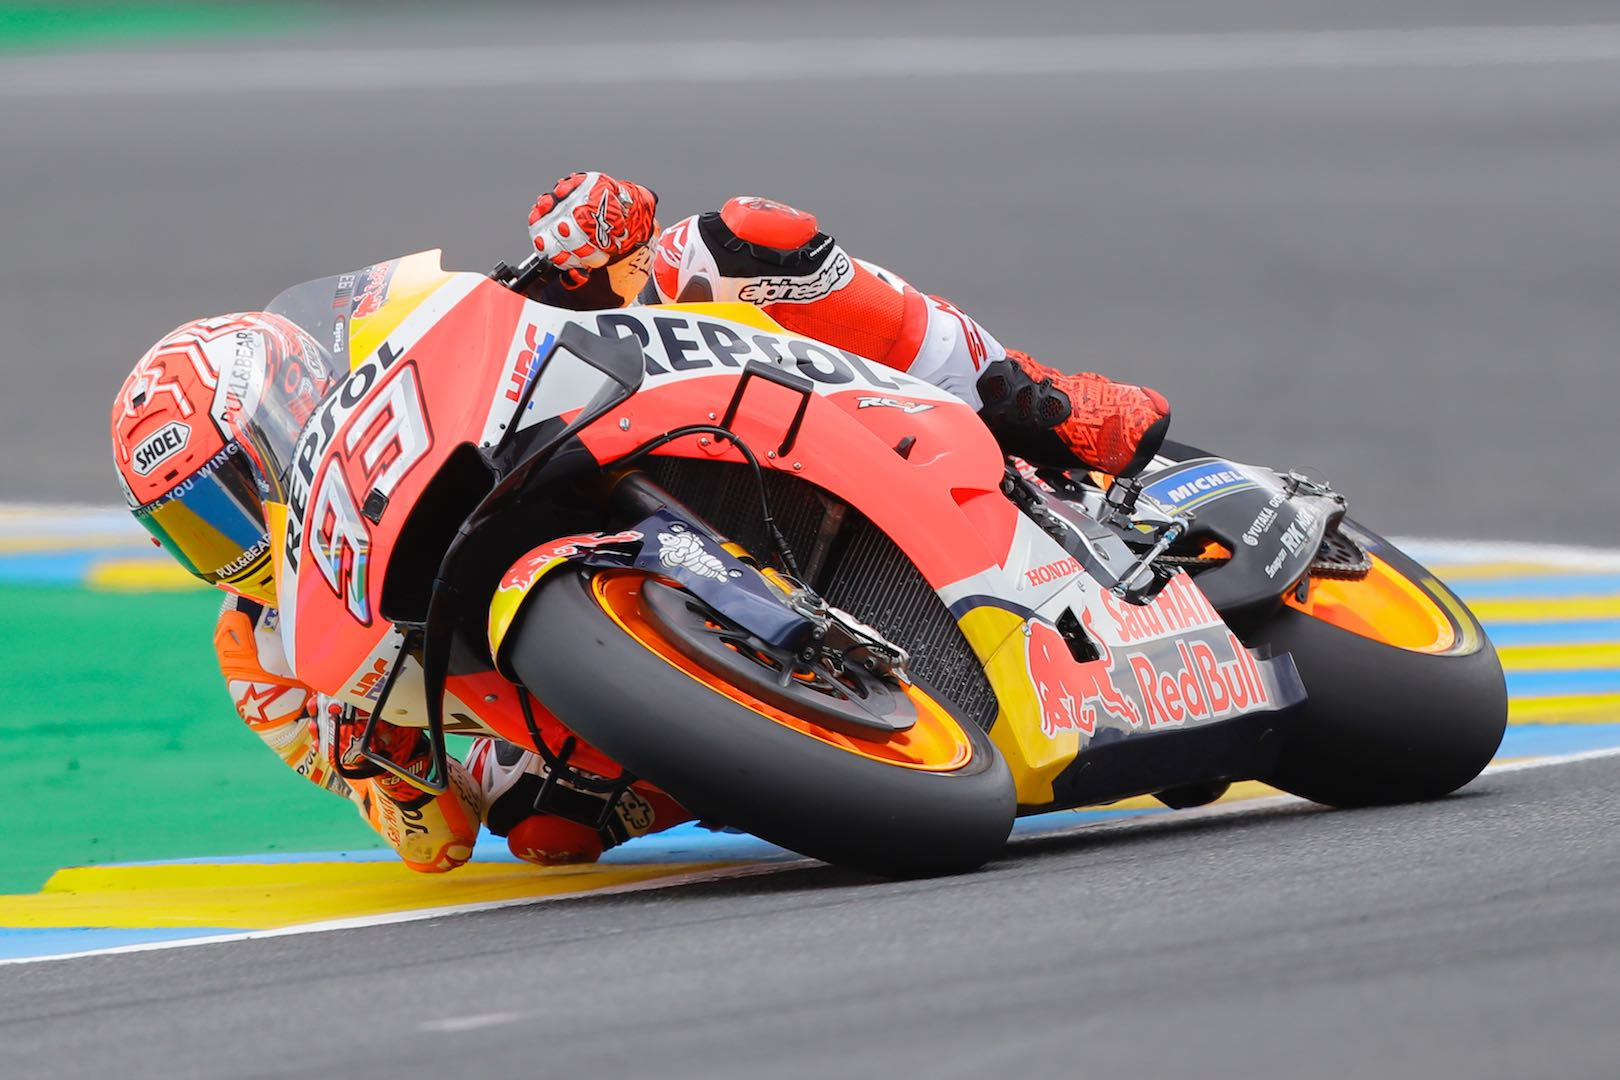 MotoGP – Marquez gives Honda their 300th victory